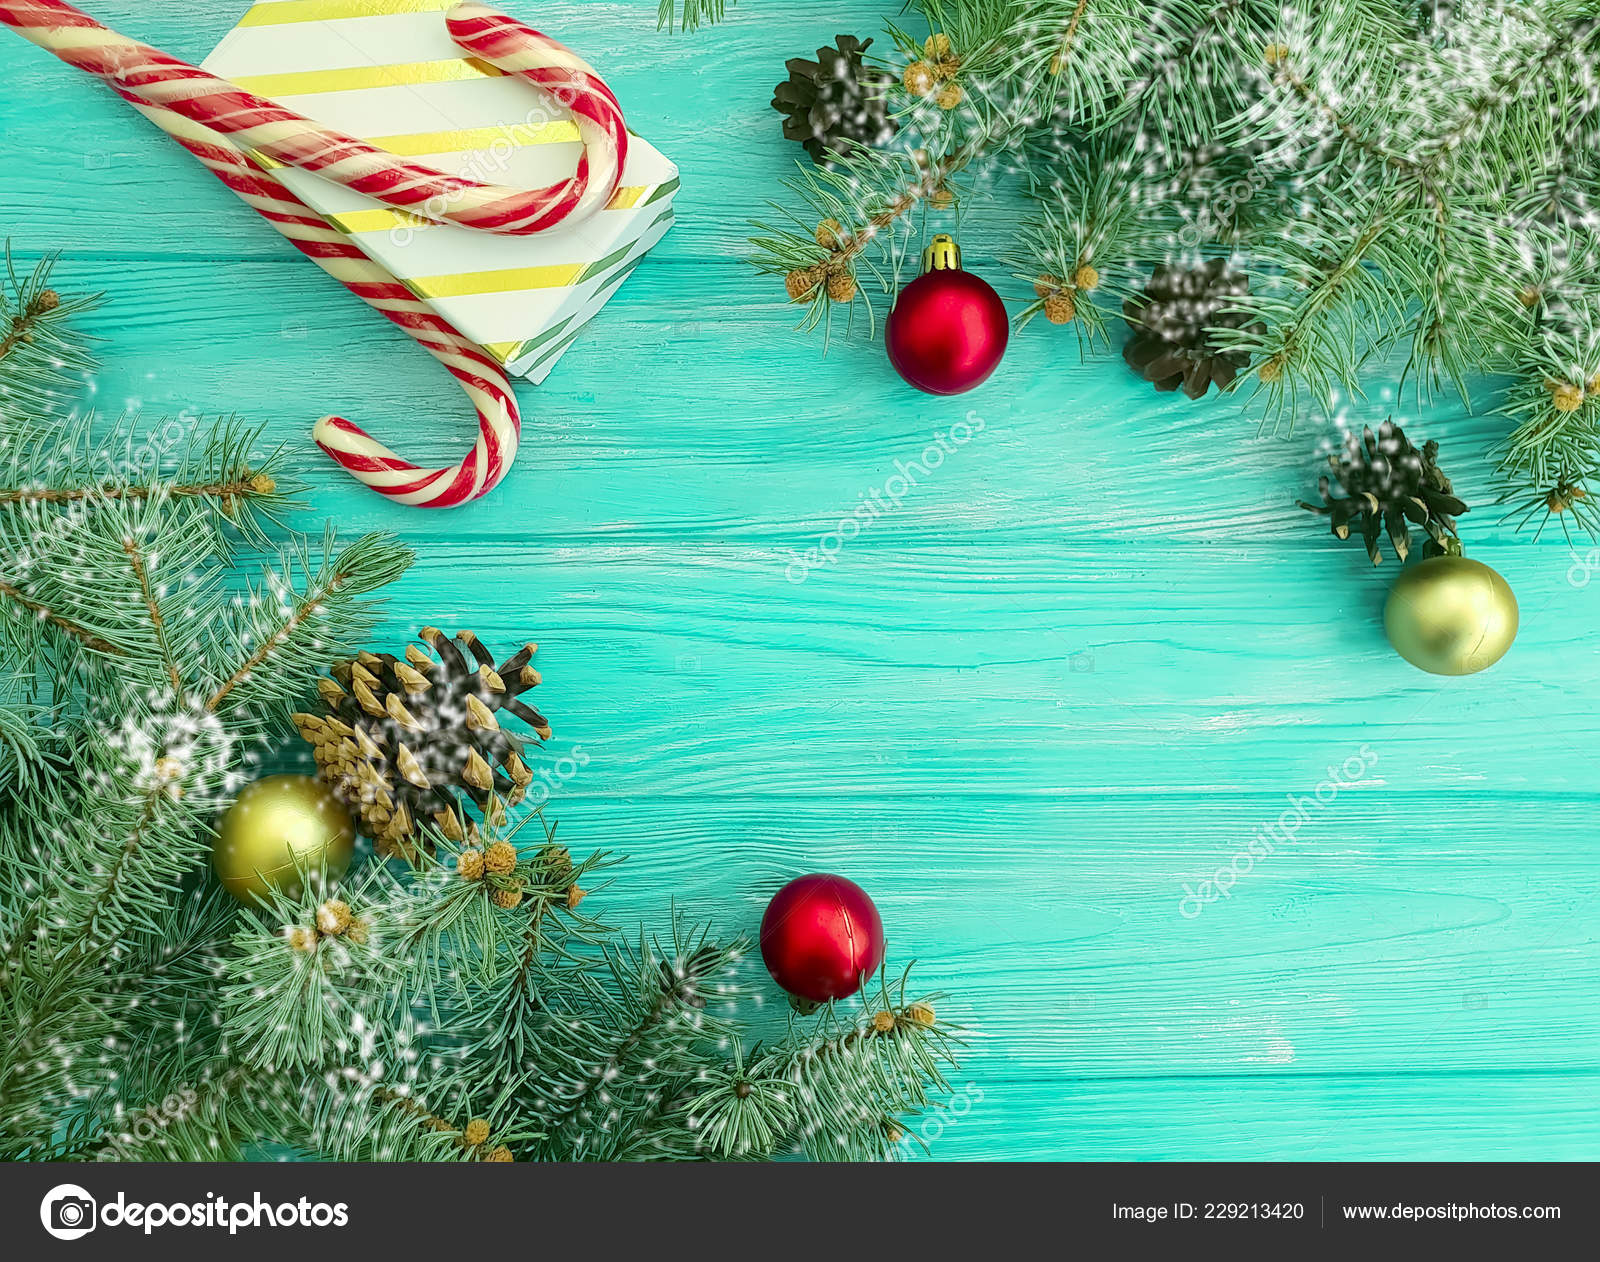 Candy Christmas Tree Branches Gift Box Blue Wooden Background Stock Photo C Tanyalovus 229213420